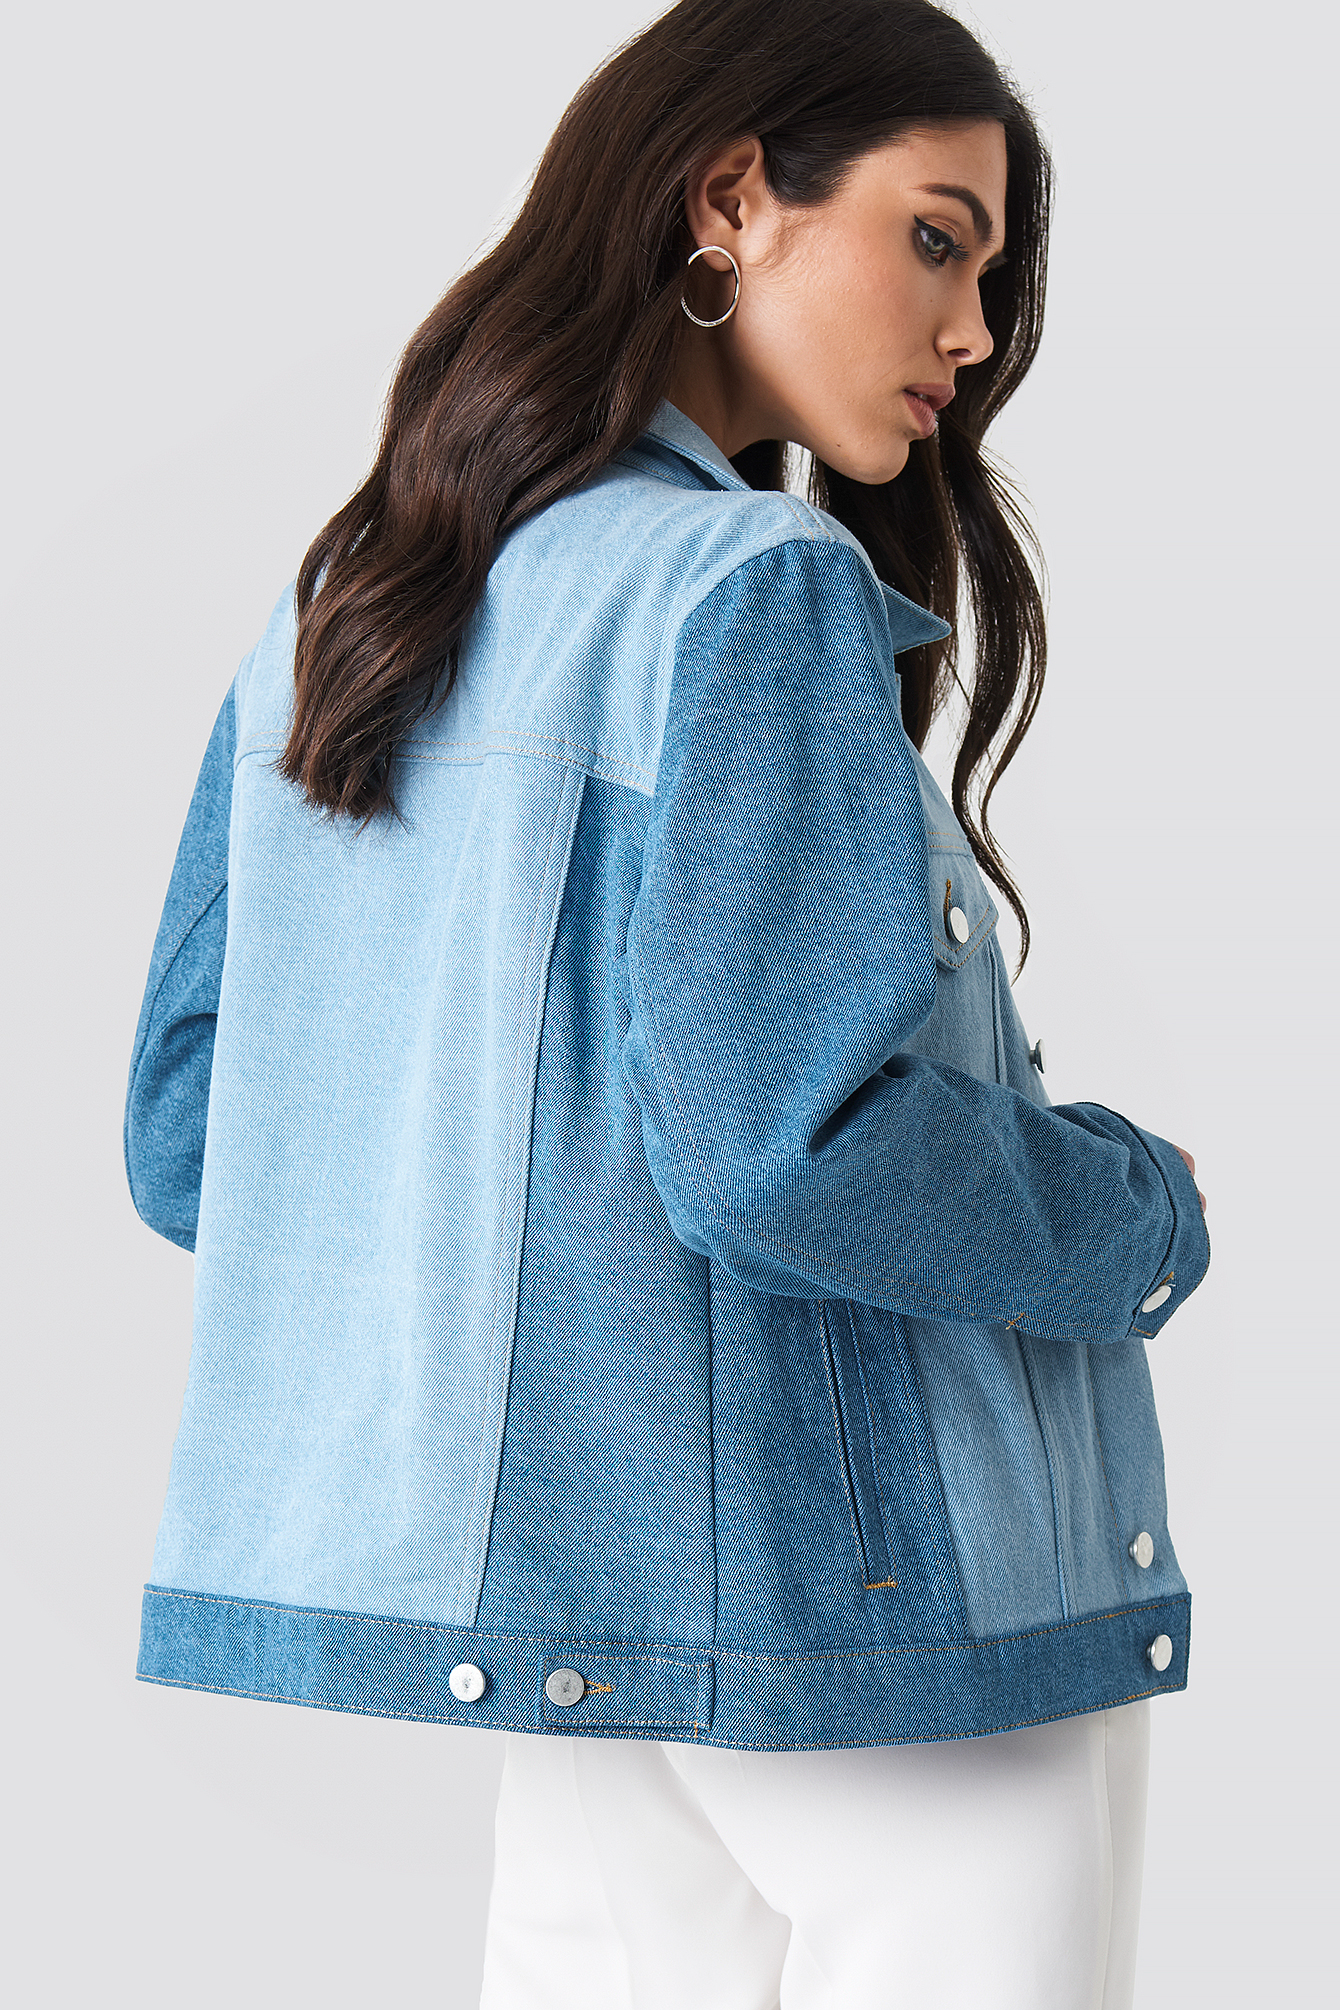 Two Toned Denim Jacket NA-KD.COM